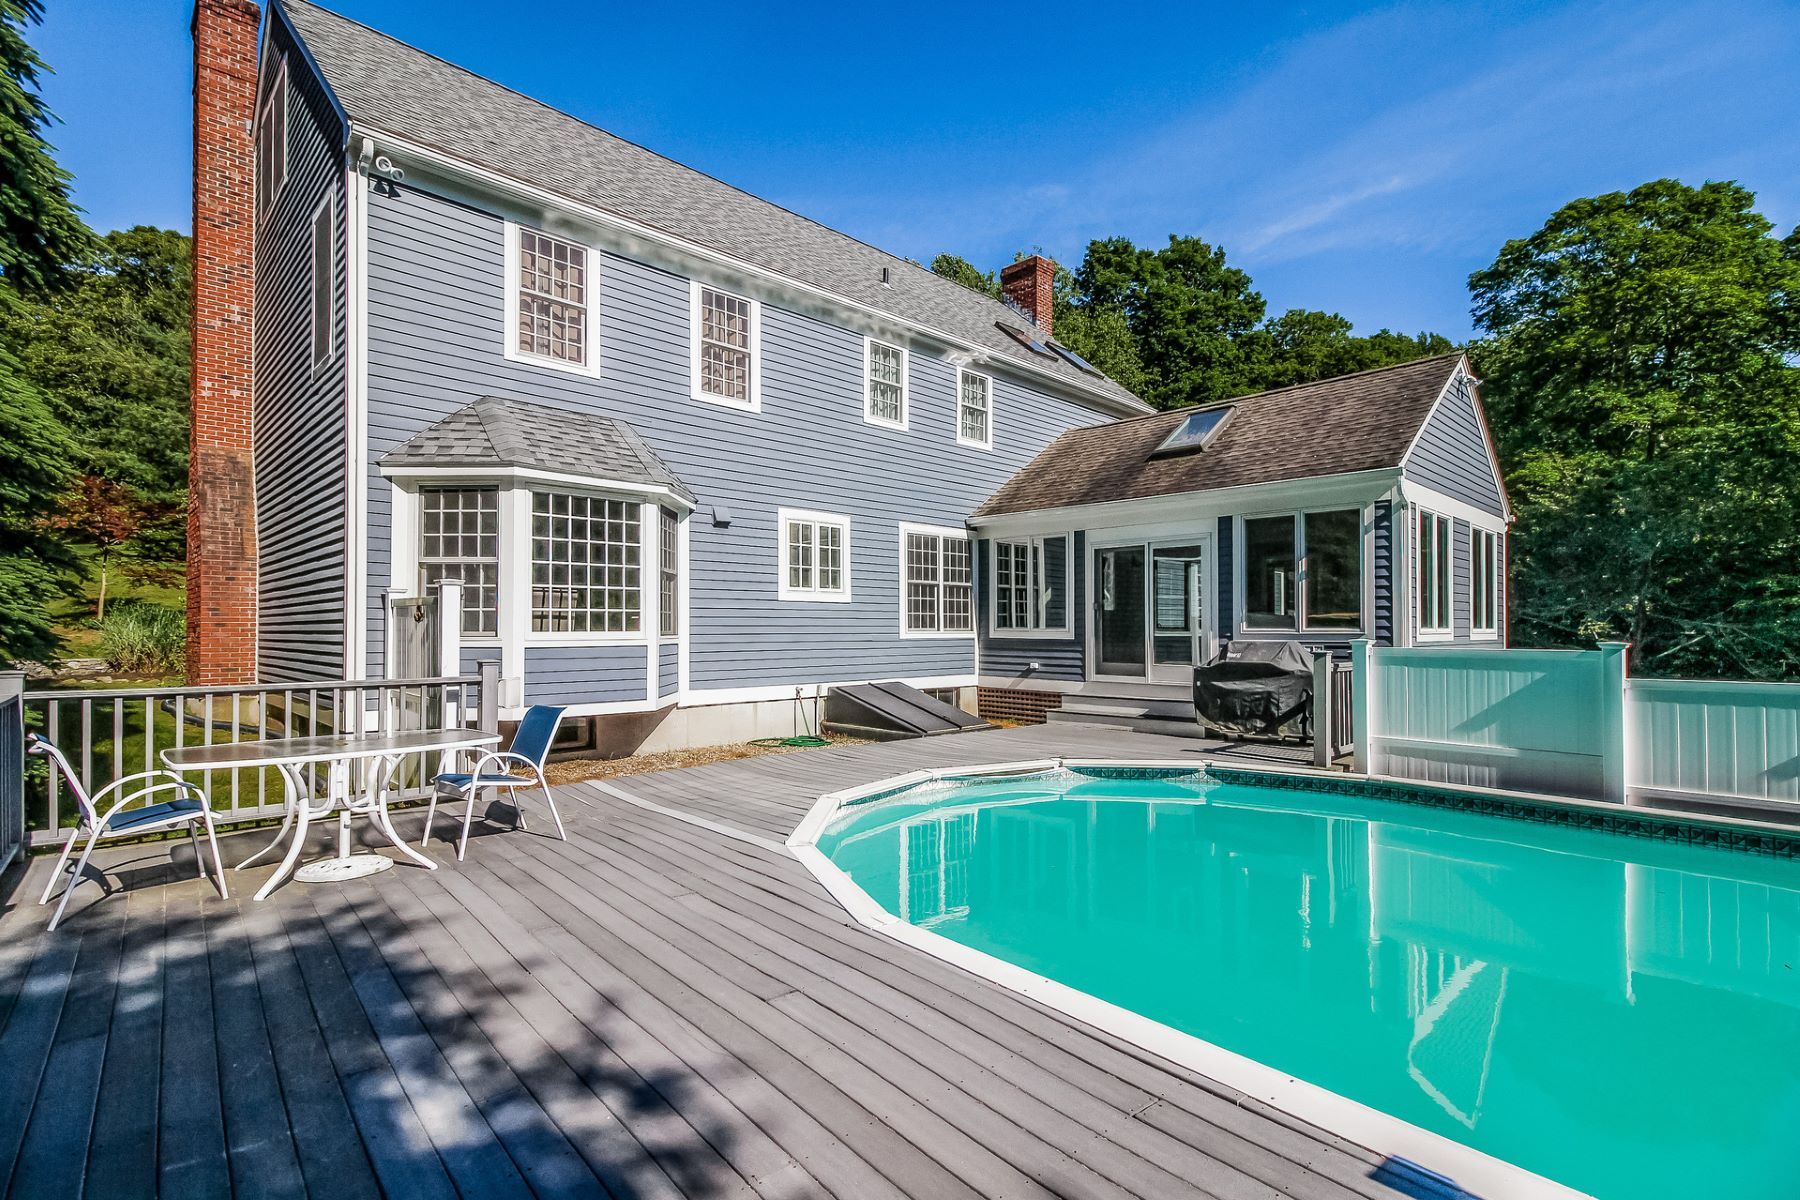 Single Family Homes for Sale at Impressive Colonial in a Desirable Neighborhood 67 Ortner Drive Westbrook, Connecticut 06498 United States